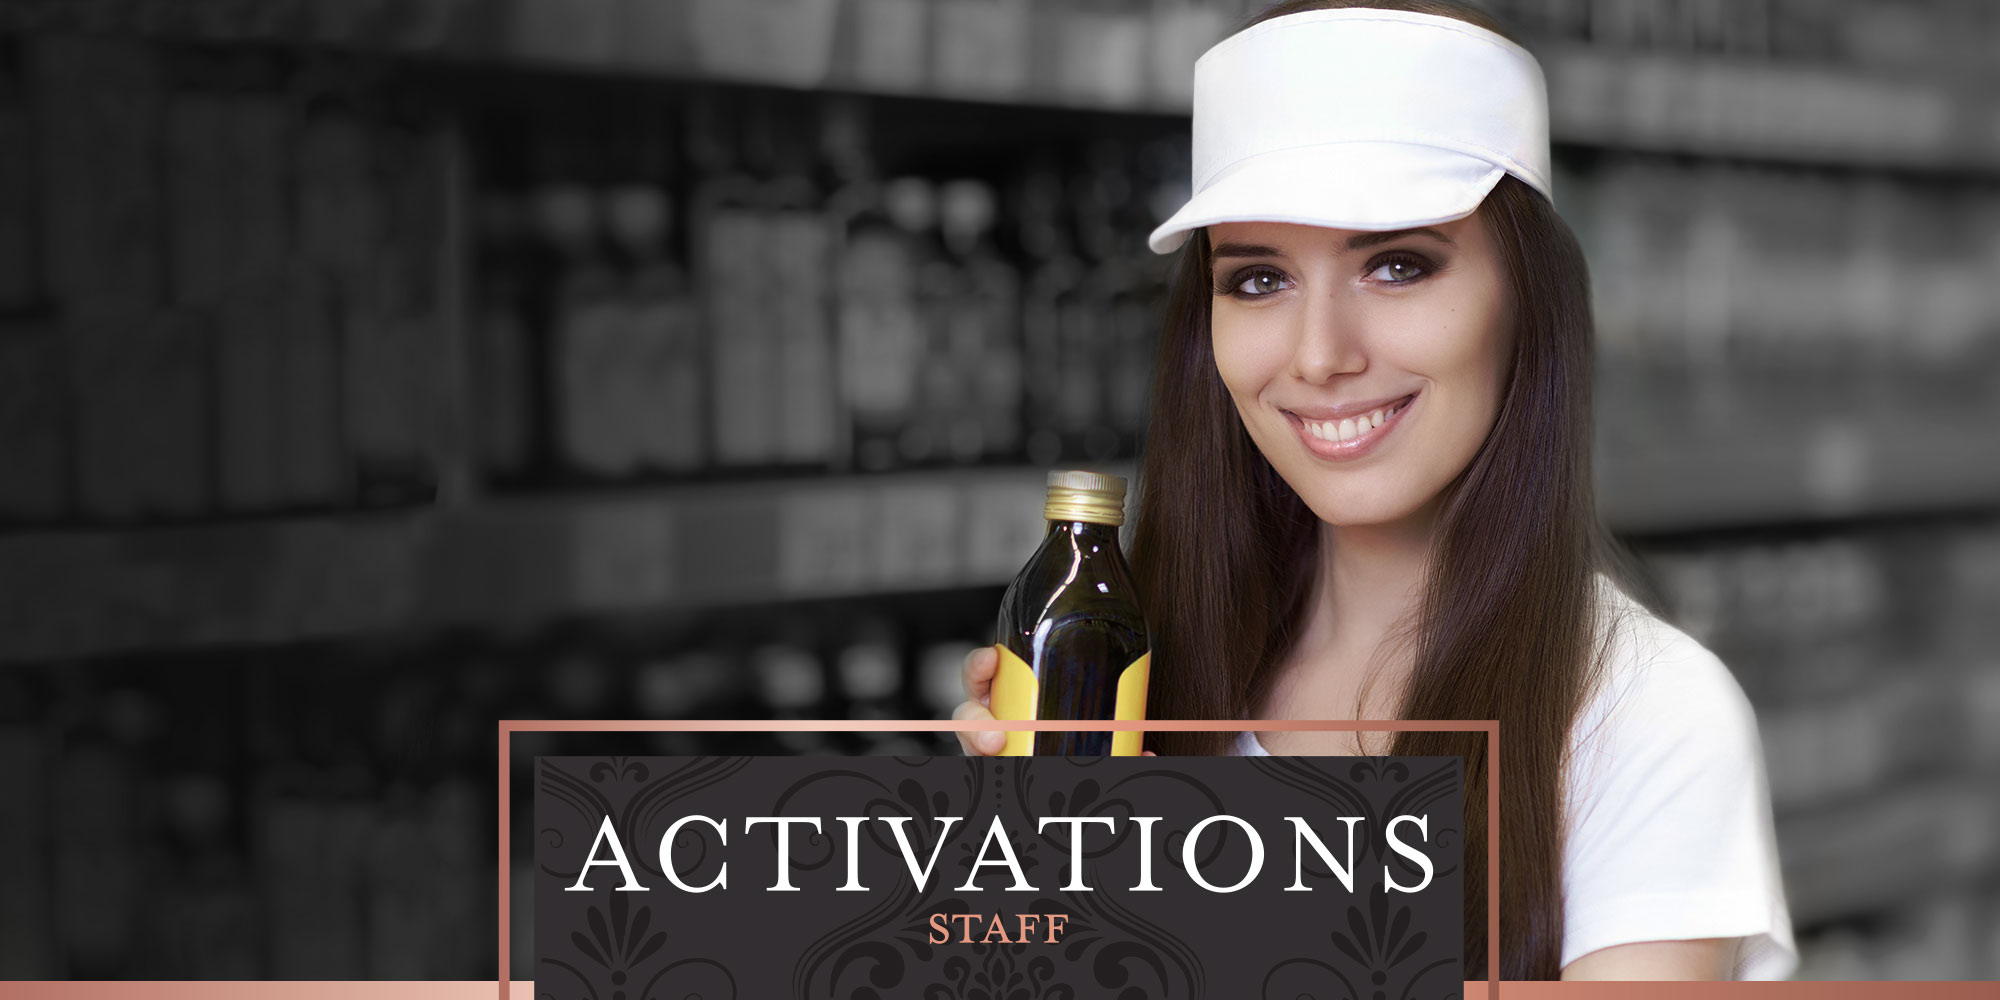 activations staff